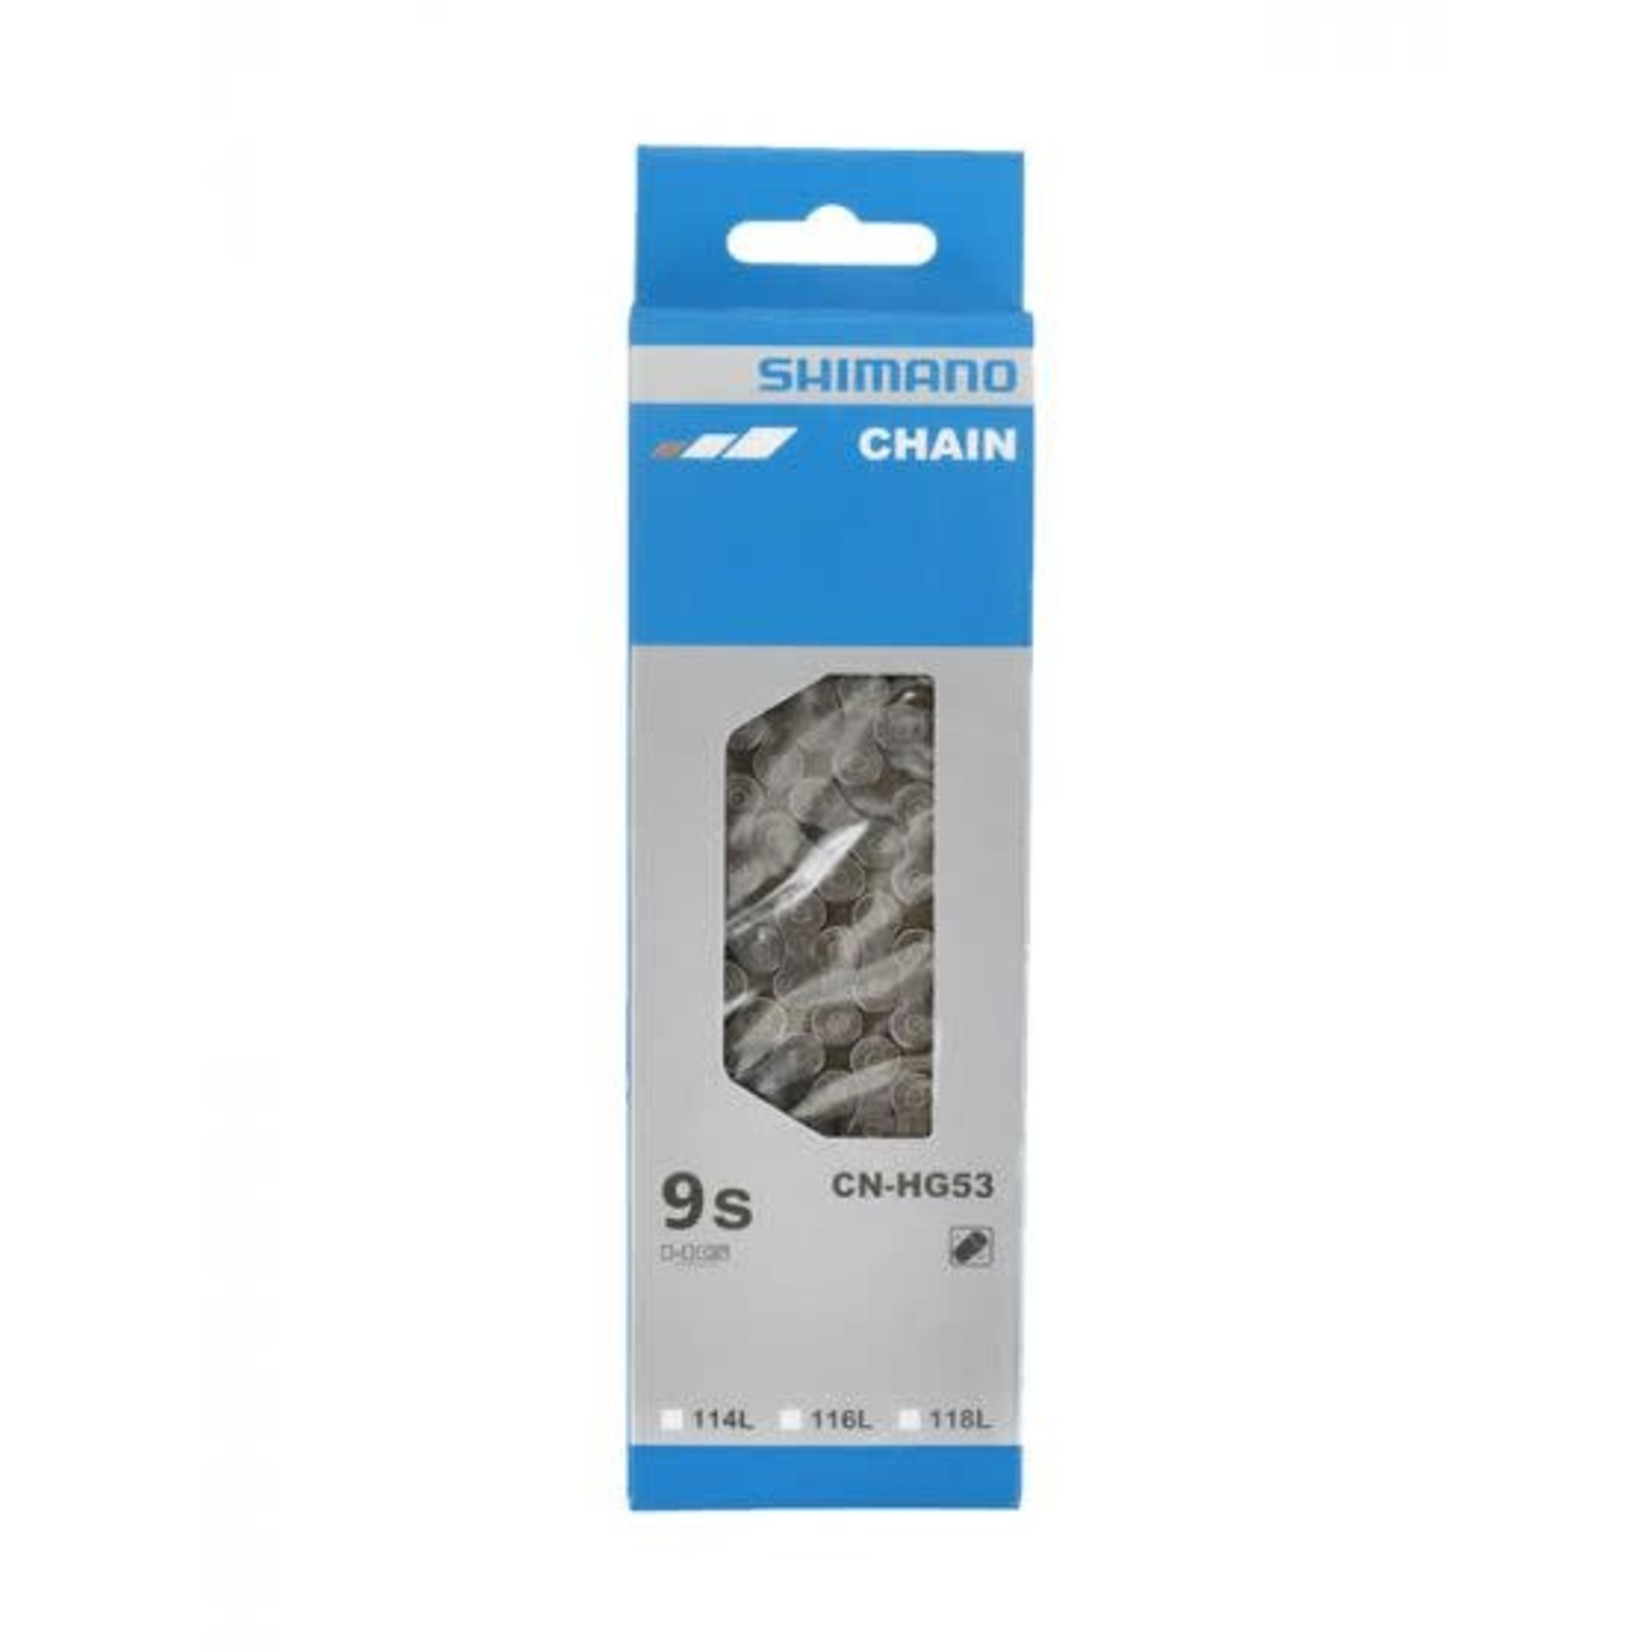 Shimano CN-HG53, Chaine, 9vit., 116 maillons